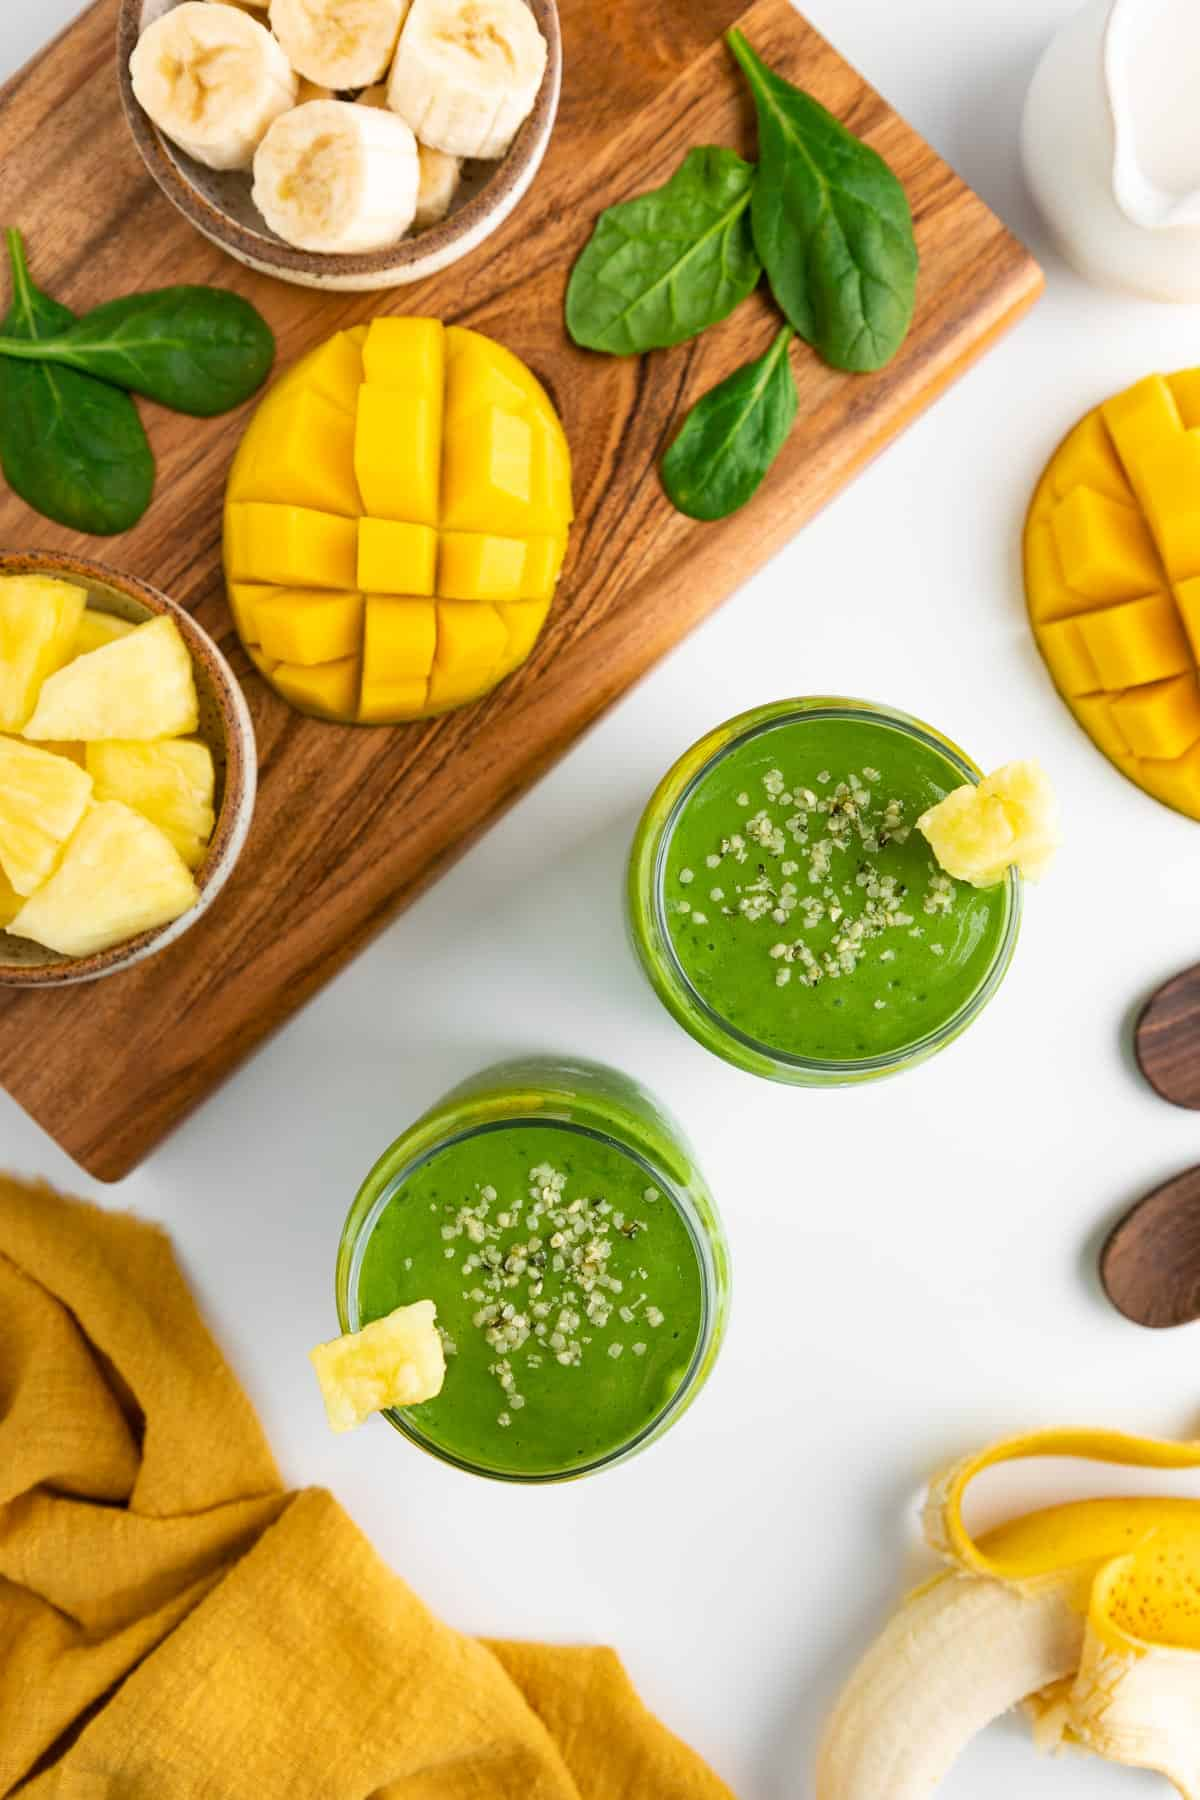 an overhead photo of two green smoothie glasses surrounded by a yellow linen napkin, a peeled banana, mango, a bowl of pineapple, and spinach leaves